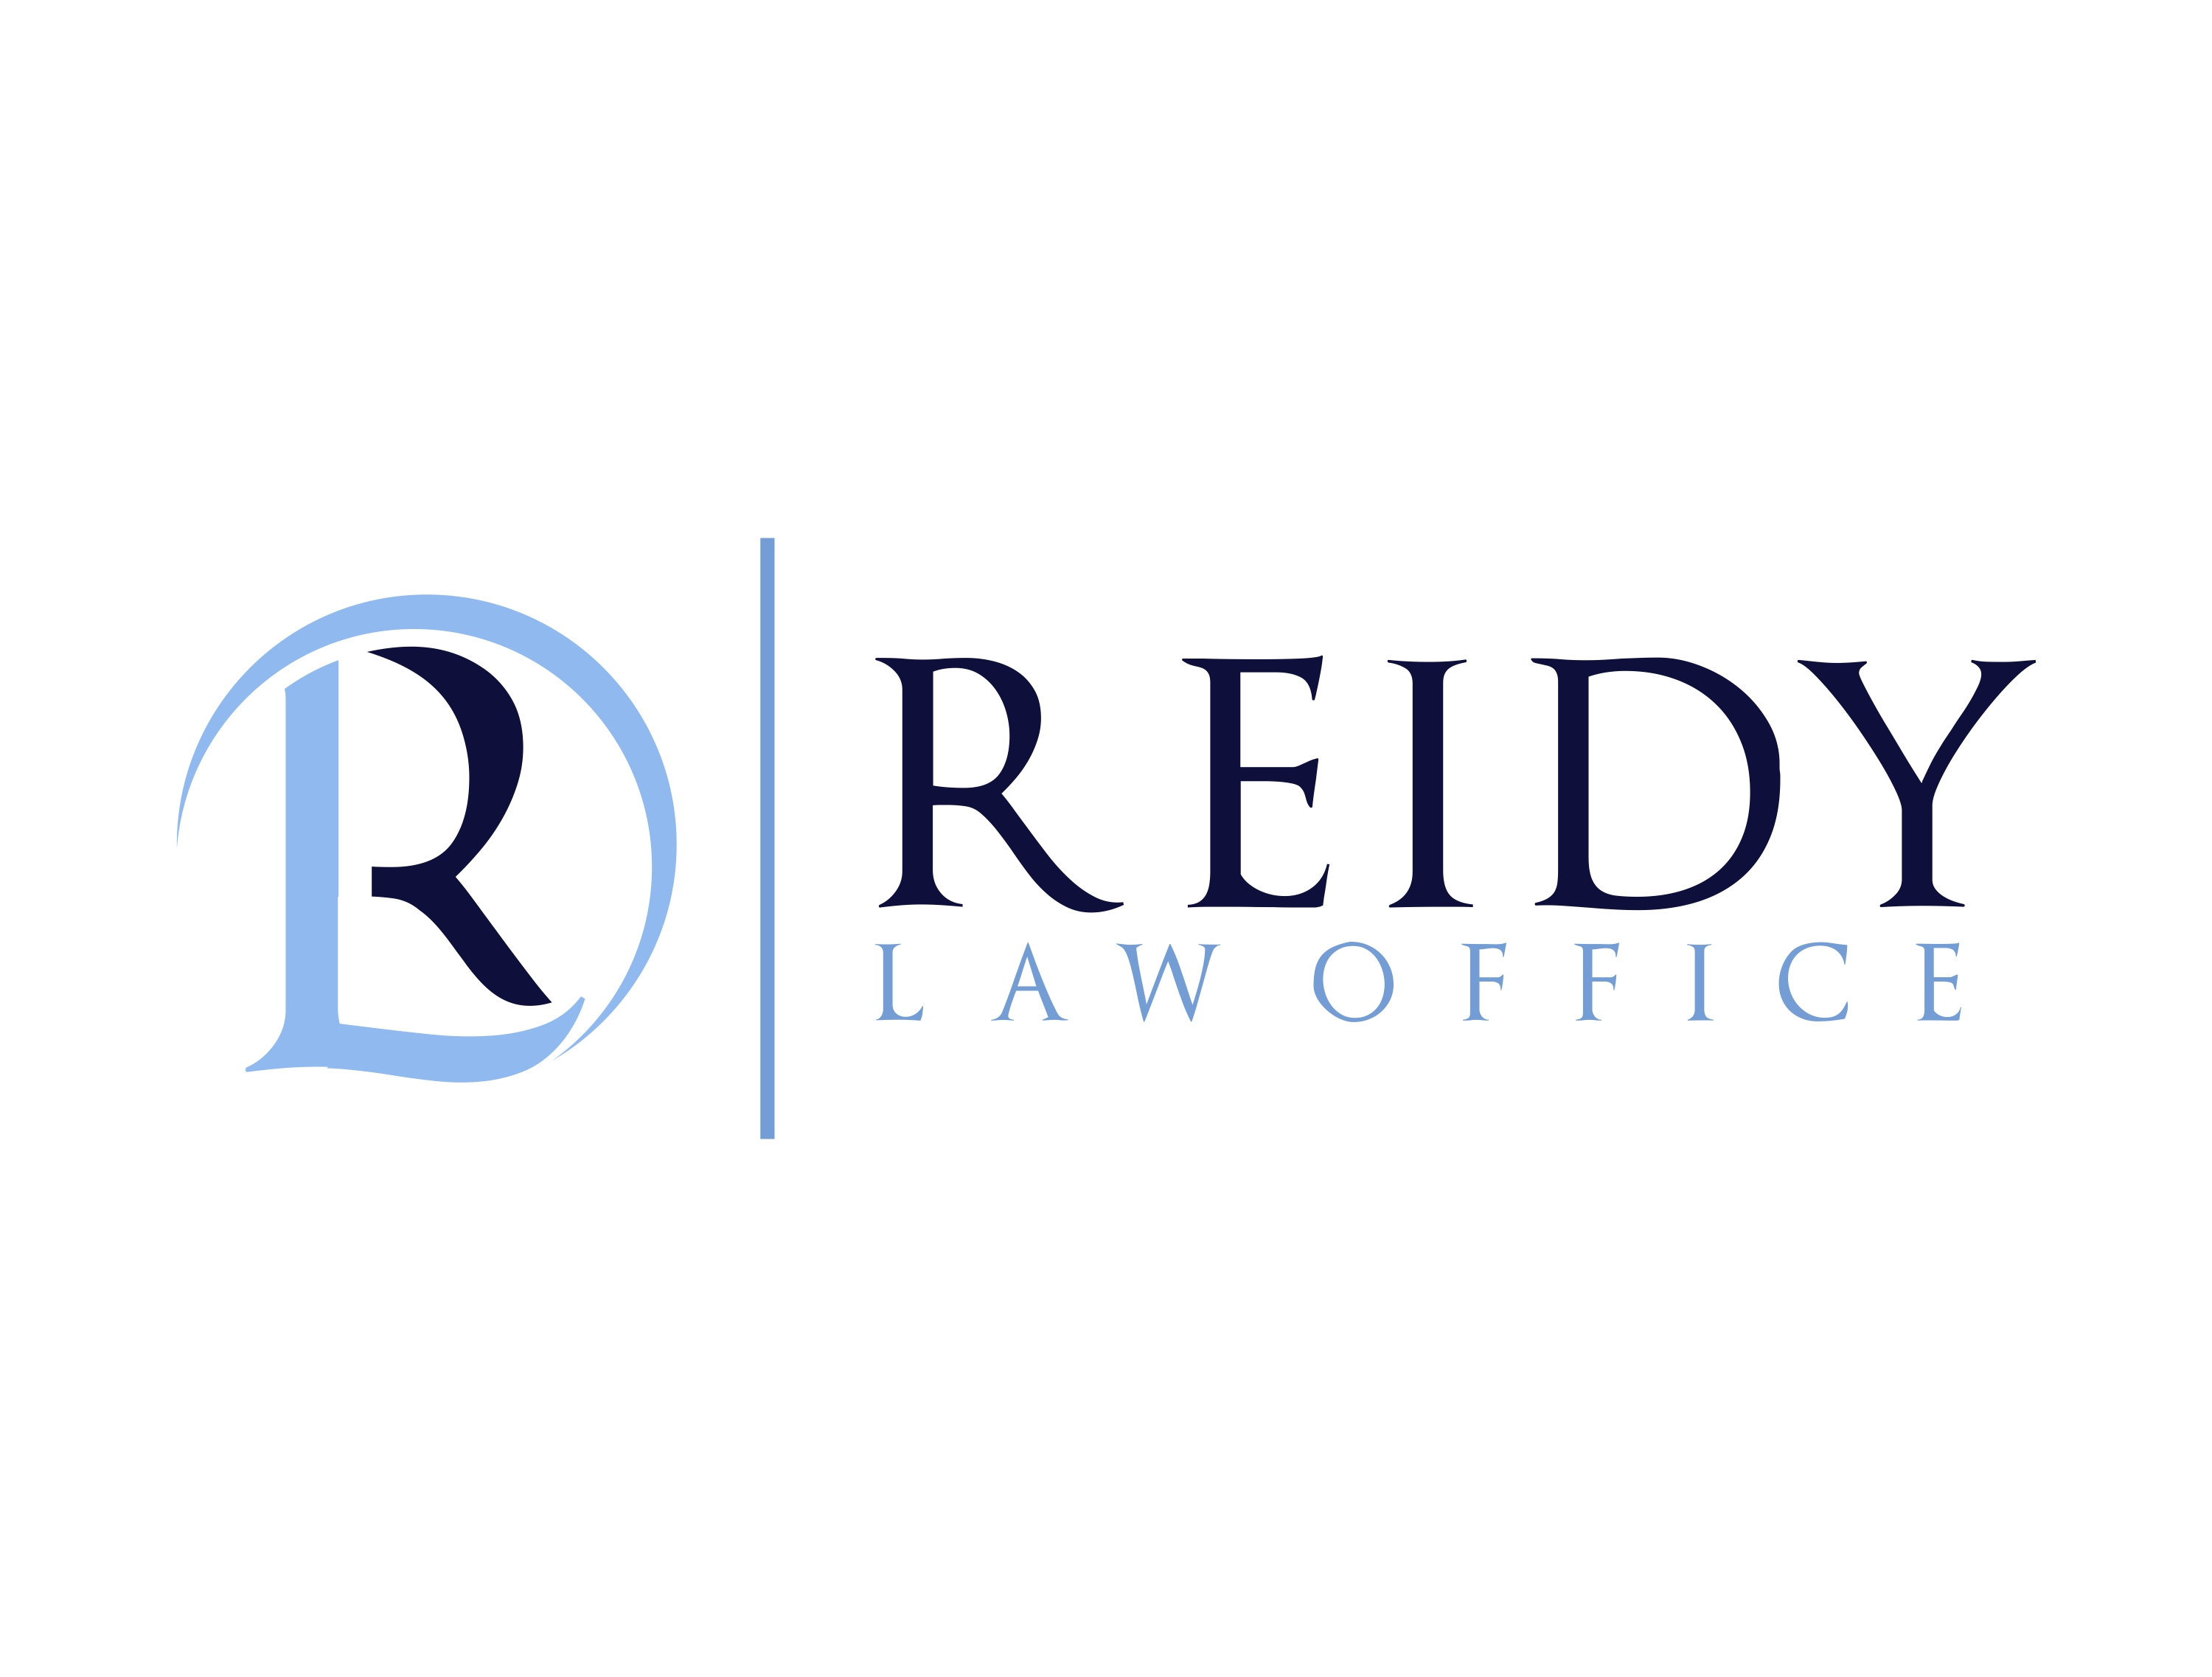 Reidy Law Office